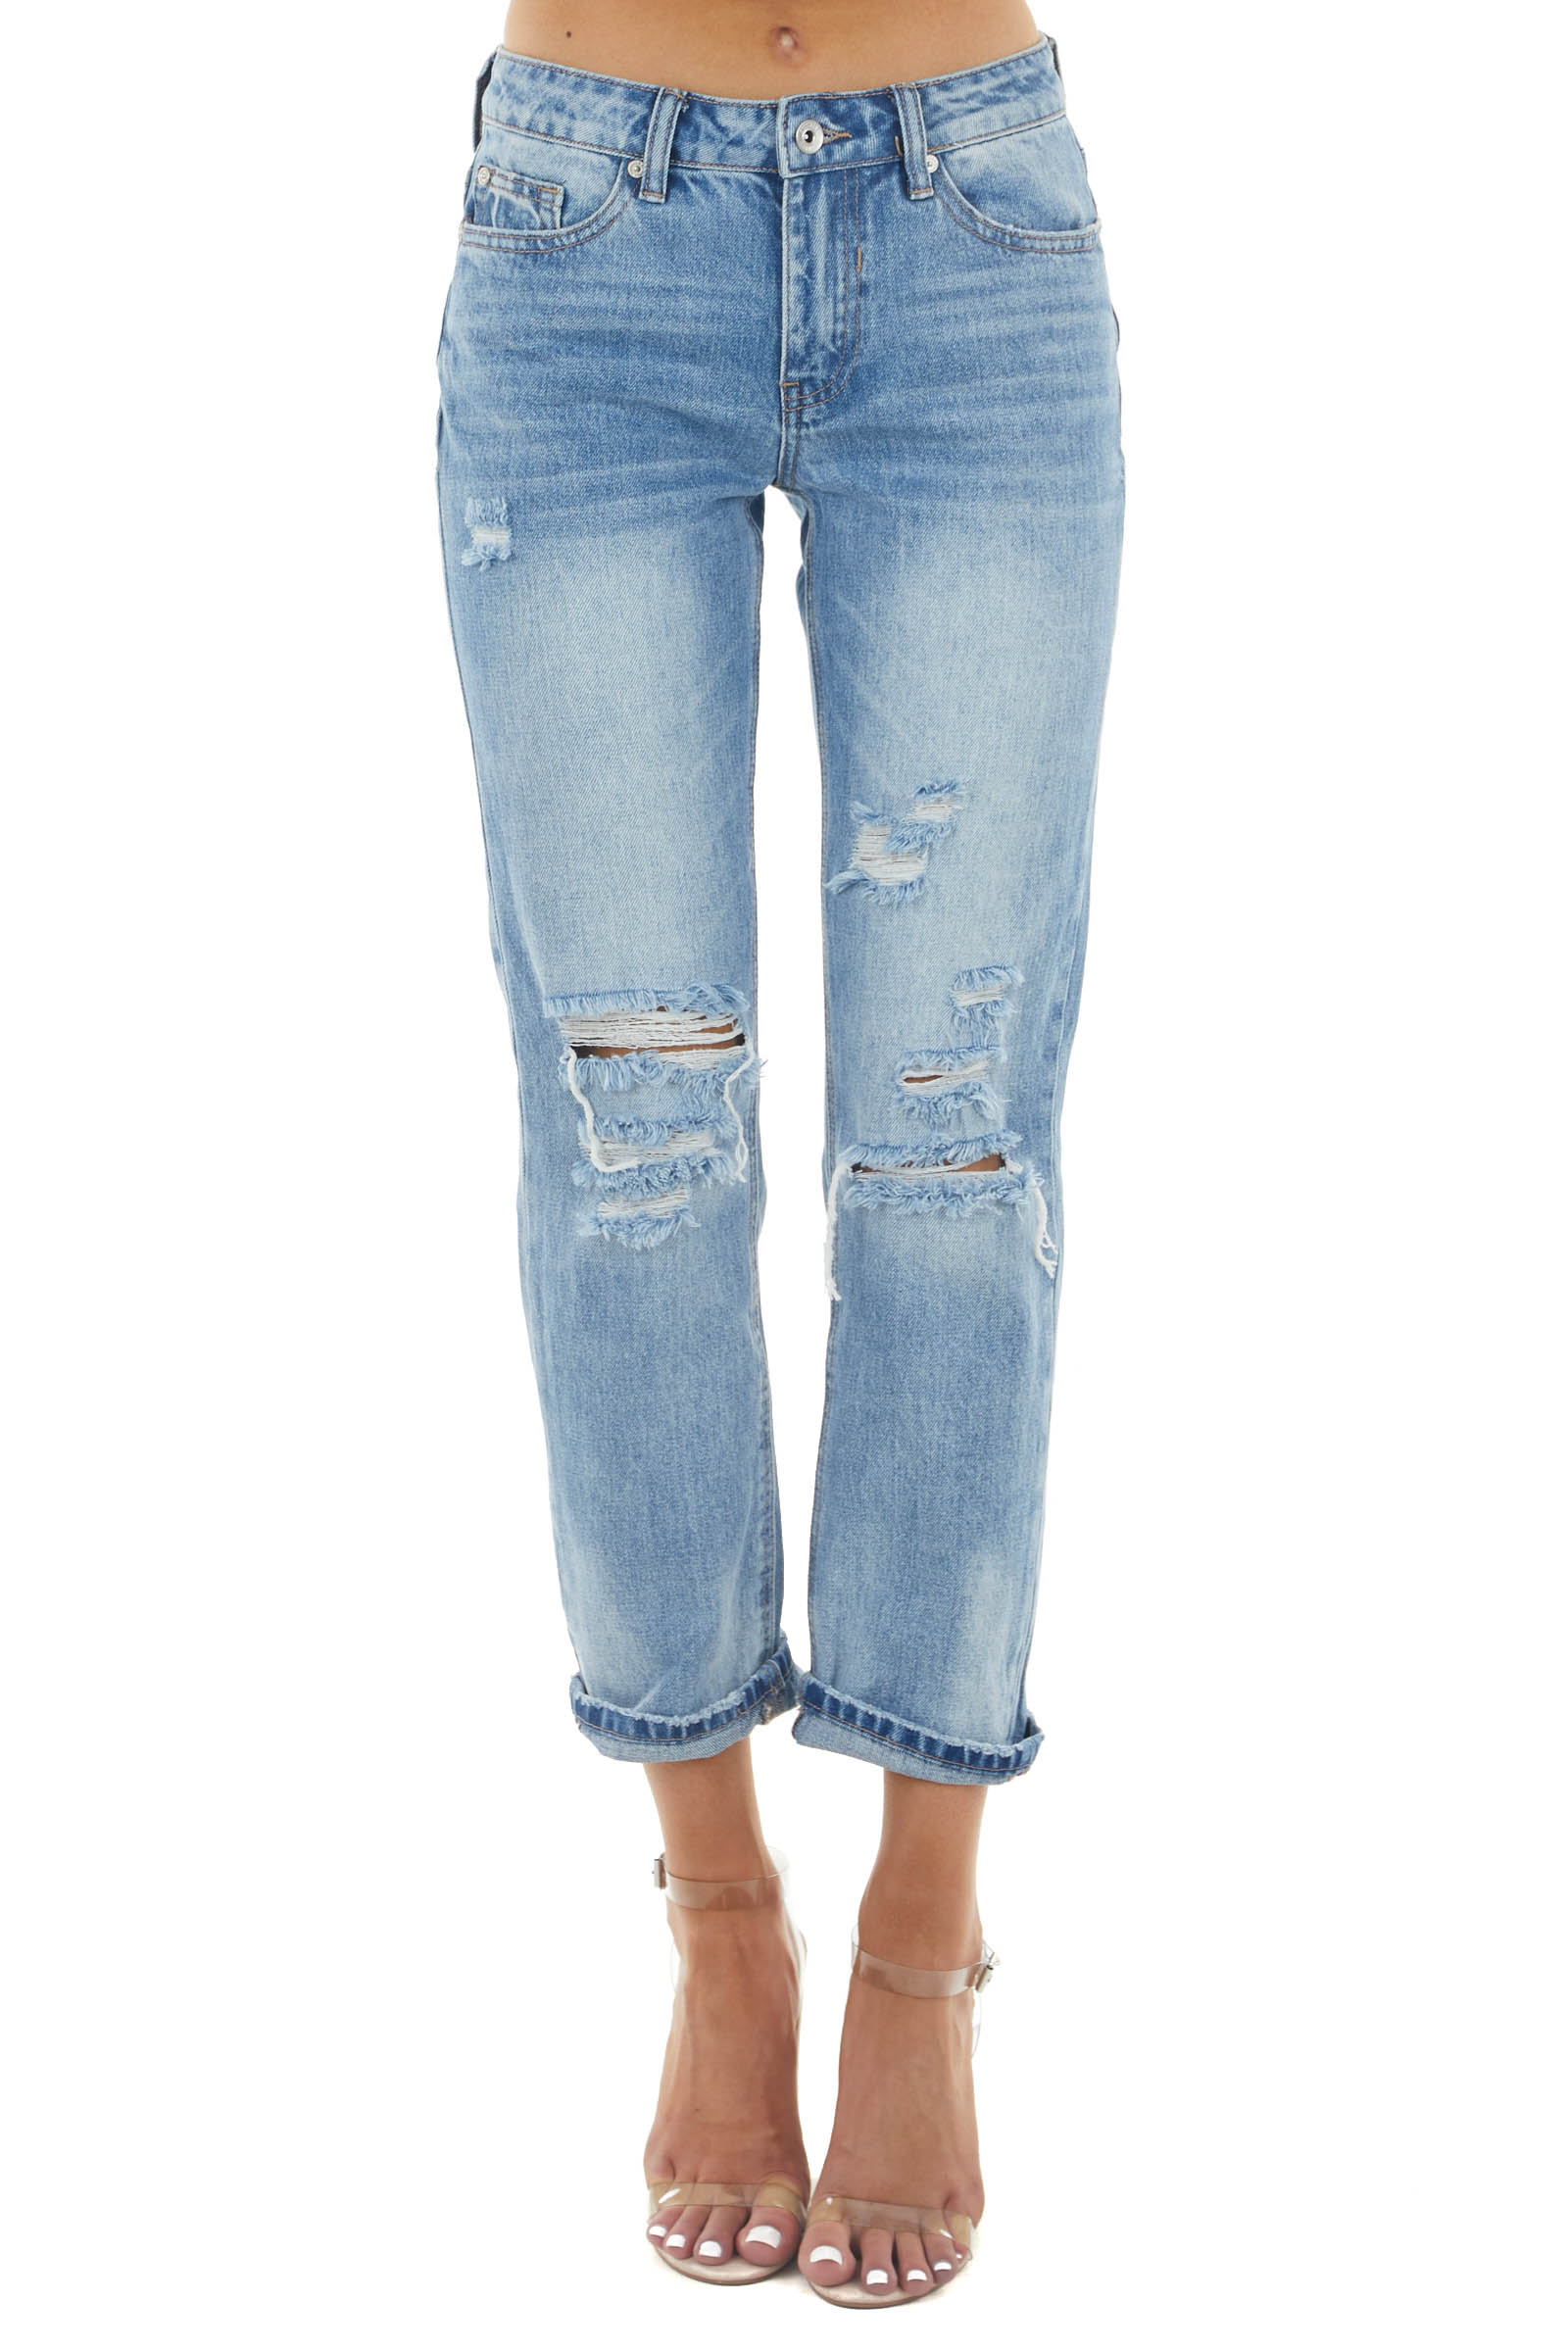 Light Wash Mid Rise Distressed Cuffed Jeans with Relaxed Fit